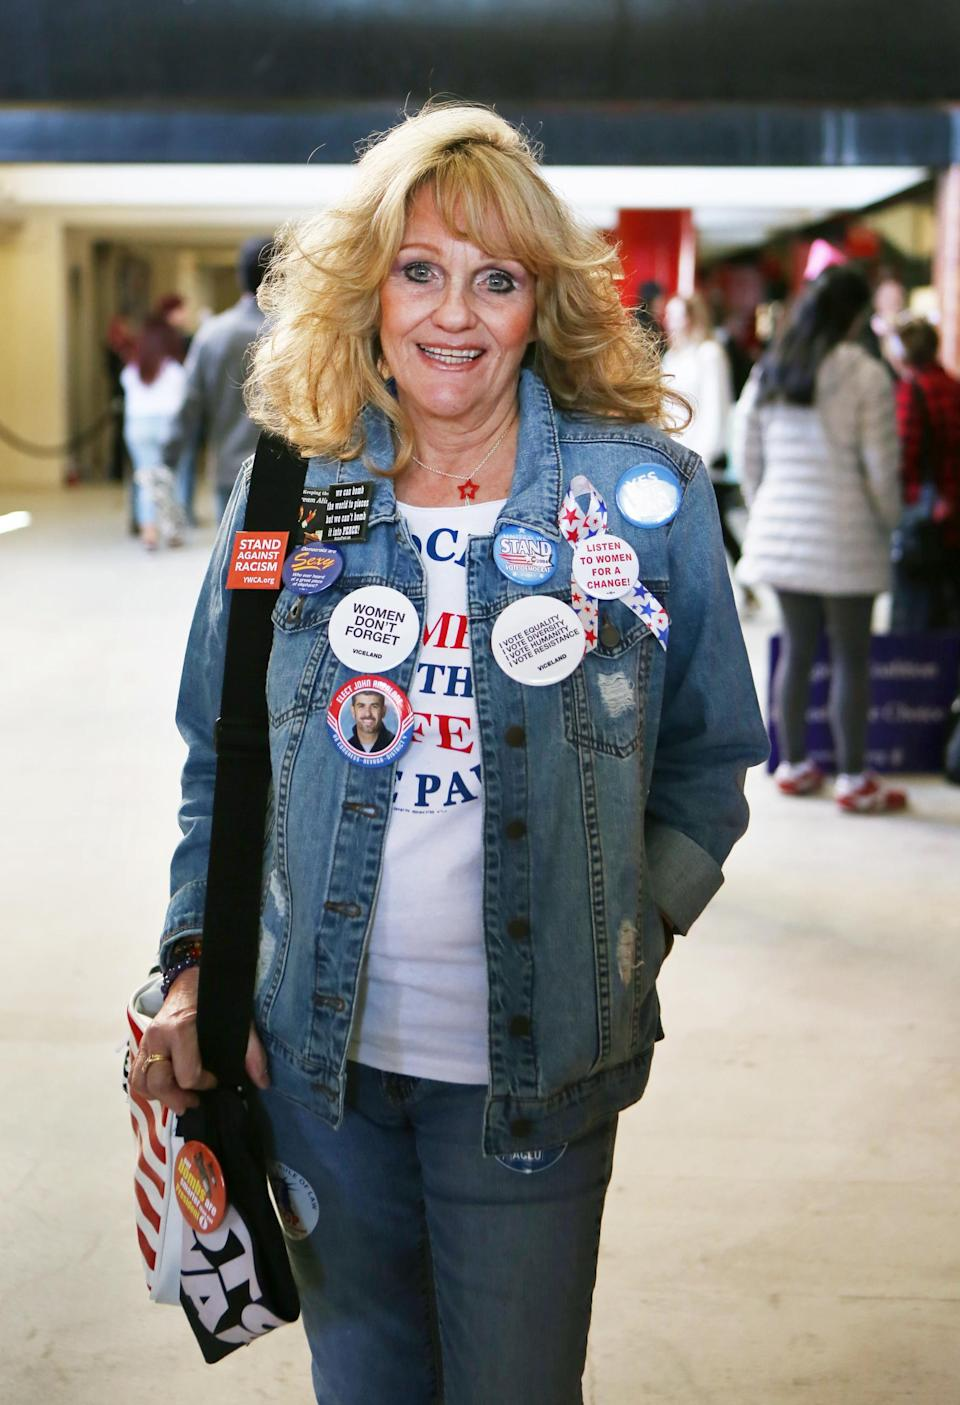 """<p>Delena Bobbera of Las Vegas has always been politically active — she was a Hillary Clinton delegate, worked on John Kerry's presidential campaign, and was at Bill Clinton's inauguration in 1997. Today, she says, """"I am appalled with our president, and I'm here to voice my disgust with him as a leader and how our country has been overrun."""" (Photo: Ronda Churchill for Yahoo Lifestyle) </p>"""